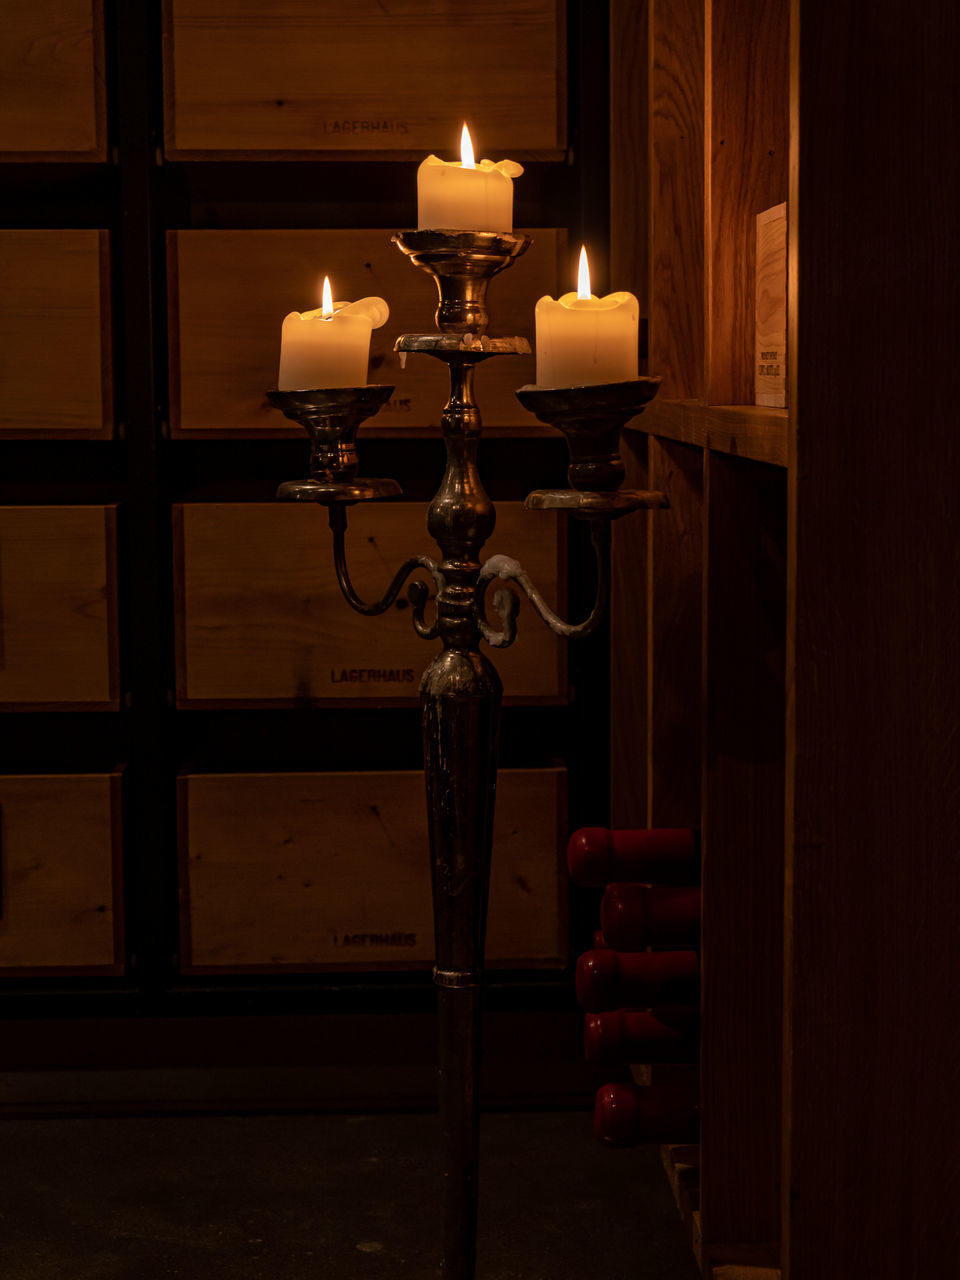 candle, flame, fire, burning, indoors, fire - natural phenomenon, illuminated, heat - temperature, candlestick holder, no people, glowing, lighting equipment, close-up, wood - material, nature, domestic room, dark, building, architecture, spirituality, tea light